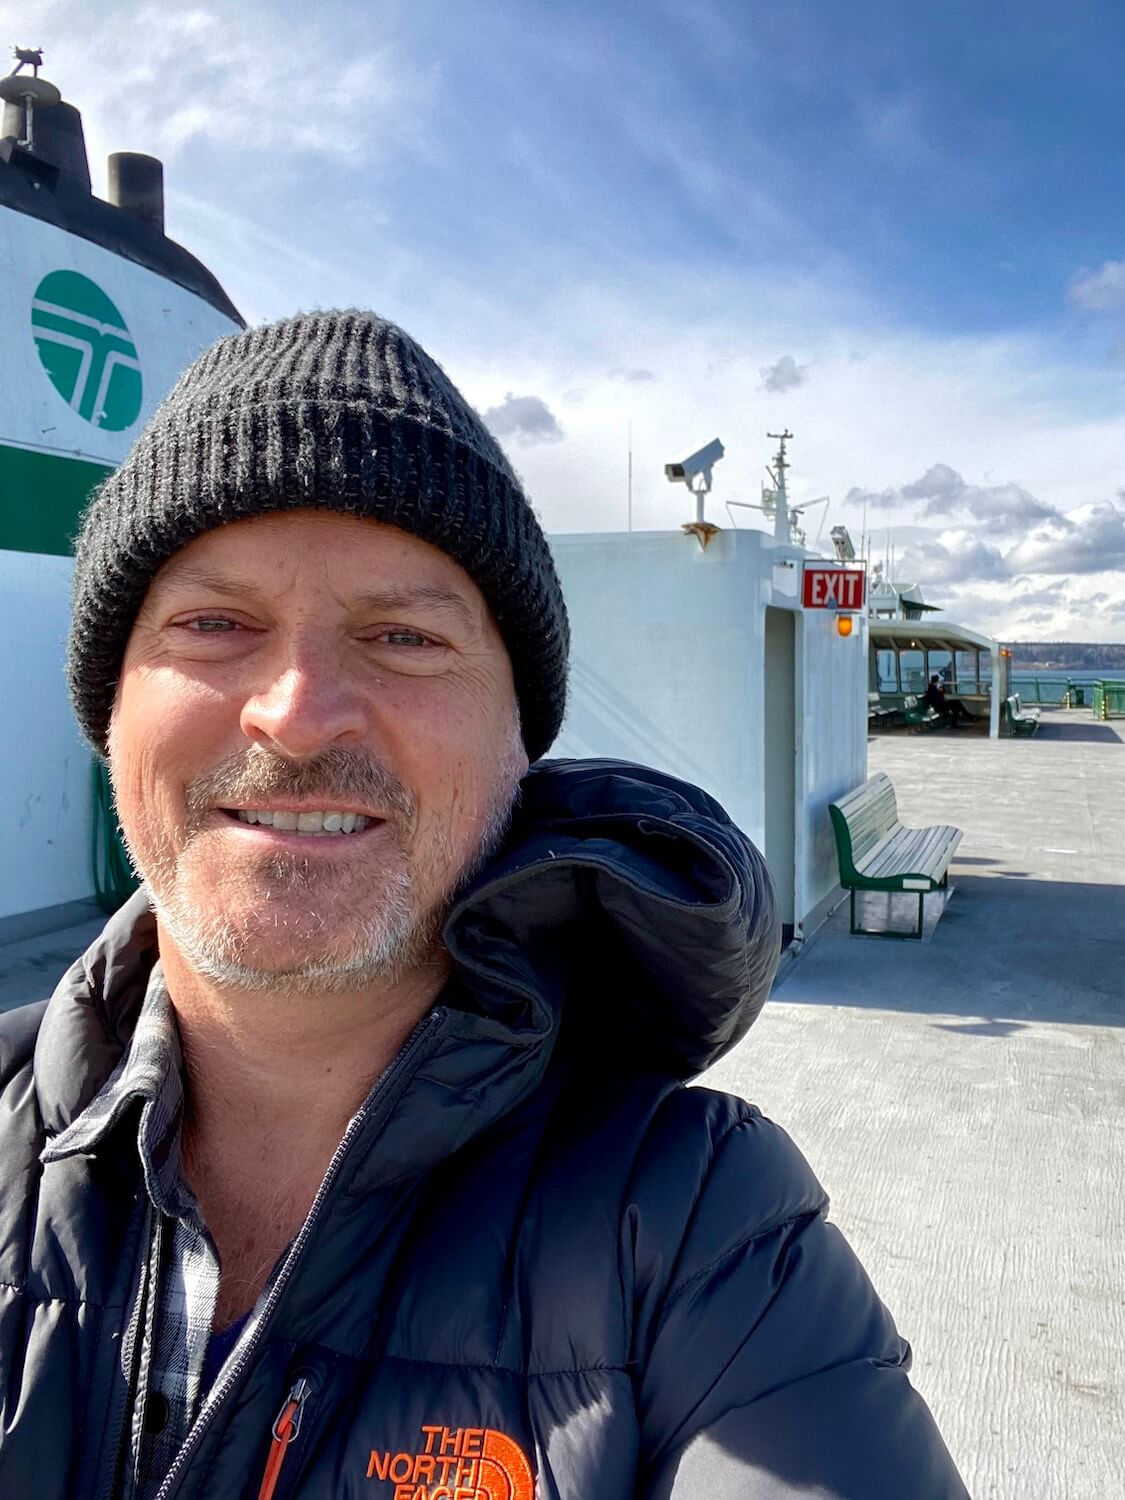 Matthew Kessi smiles while on board a Washington State Ferry, with the emblem above him from the ship's sail.  He has a scruffy gray beard and is wearing a thick wool cap.  The wide open top deck of the boat is in the background.